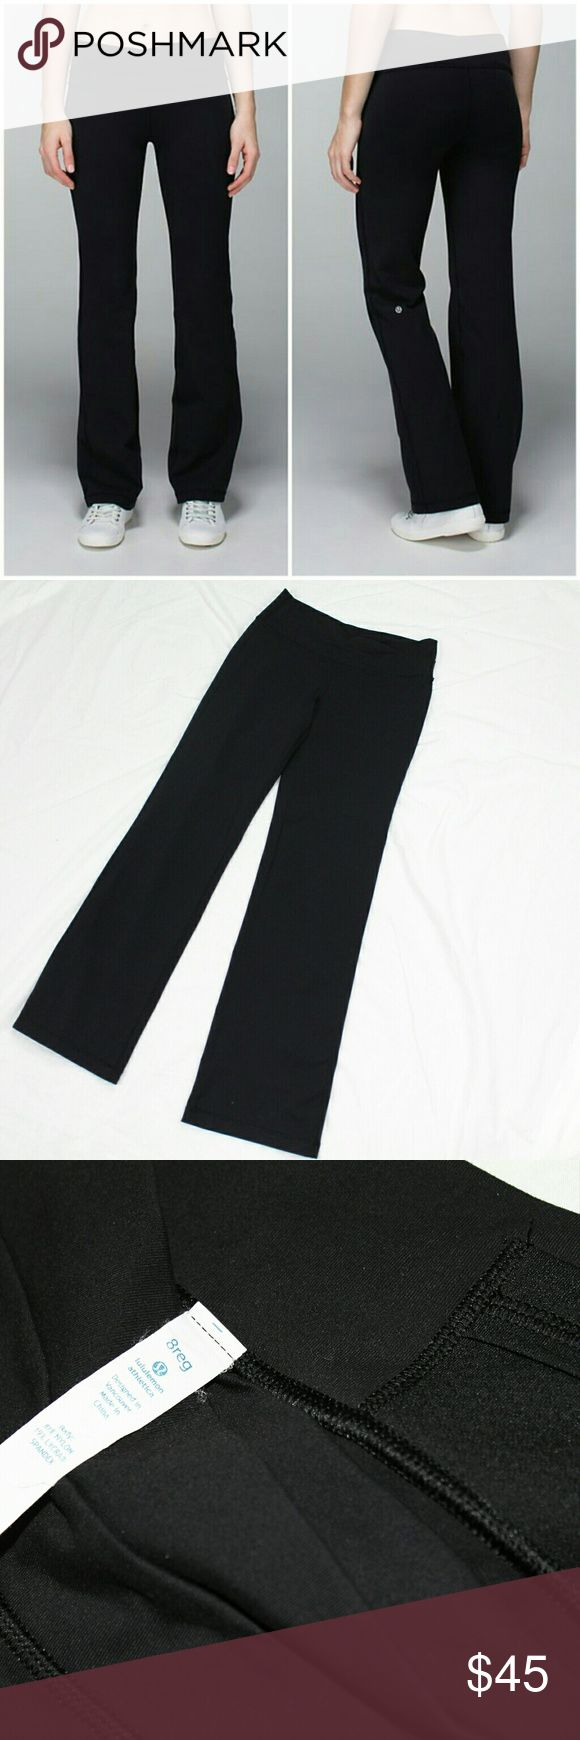 NWOT Lululemon Astro Pant Made from sweat wicking 4-way stretch fabric, these pants are designed to move with you both in and out of the gym. Roll down the waistband for a lower rise, asymmetrical look, or keep them as they are. Features straight, slightly flared leg and a small pocket in the waistband for your stuff.   Please let me know if you have any questions or need more pictures. I will consider all reasonable offers, but no trades, please. lululemon athletica Pants